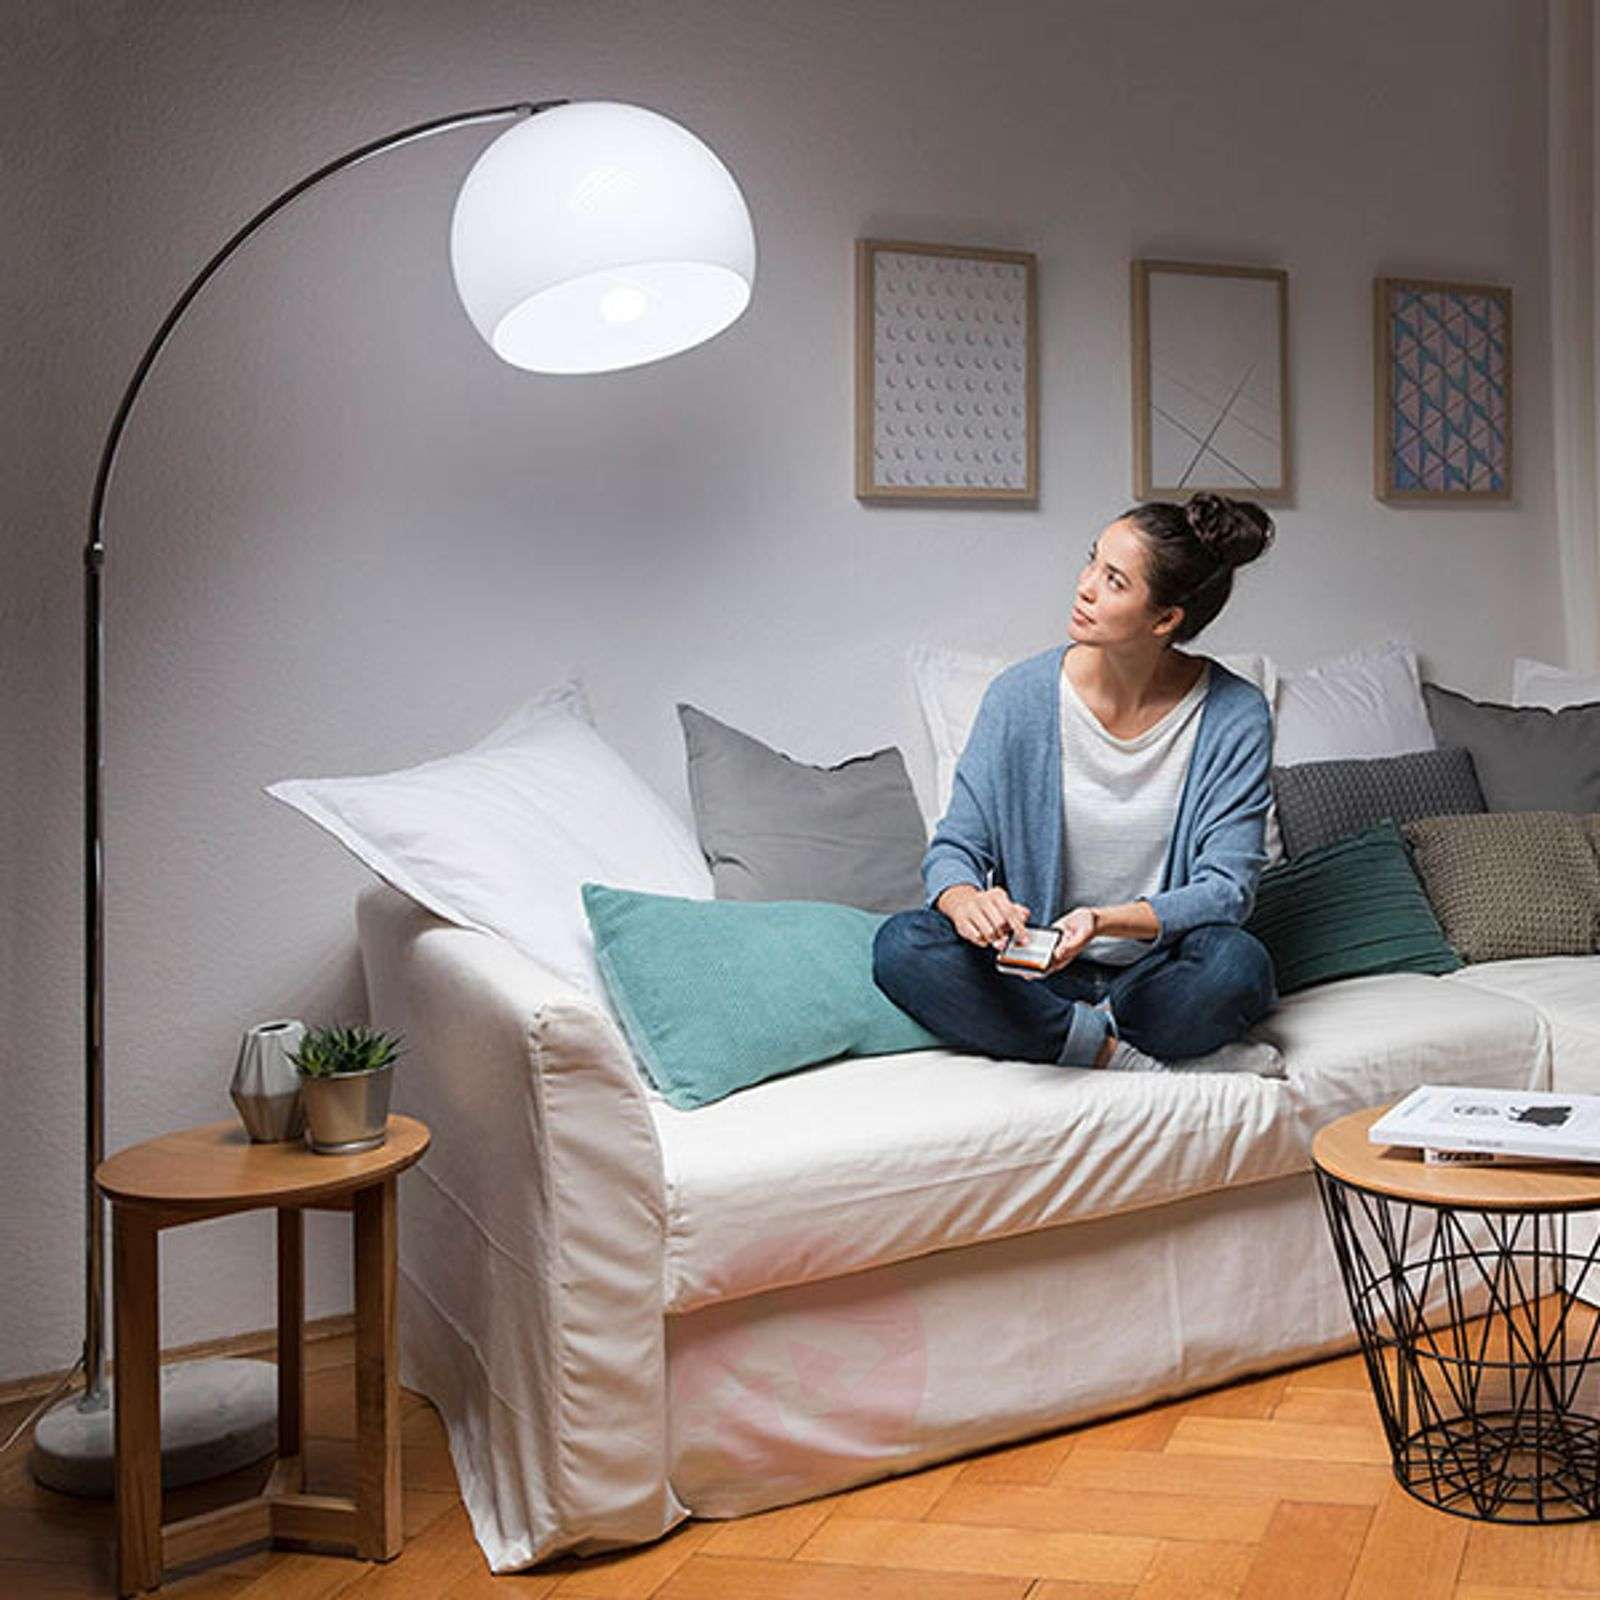 SMART+ LED GU5.3 5W, tunable white, 350lm dimmable-7262128-01